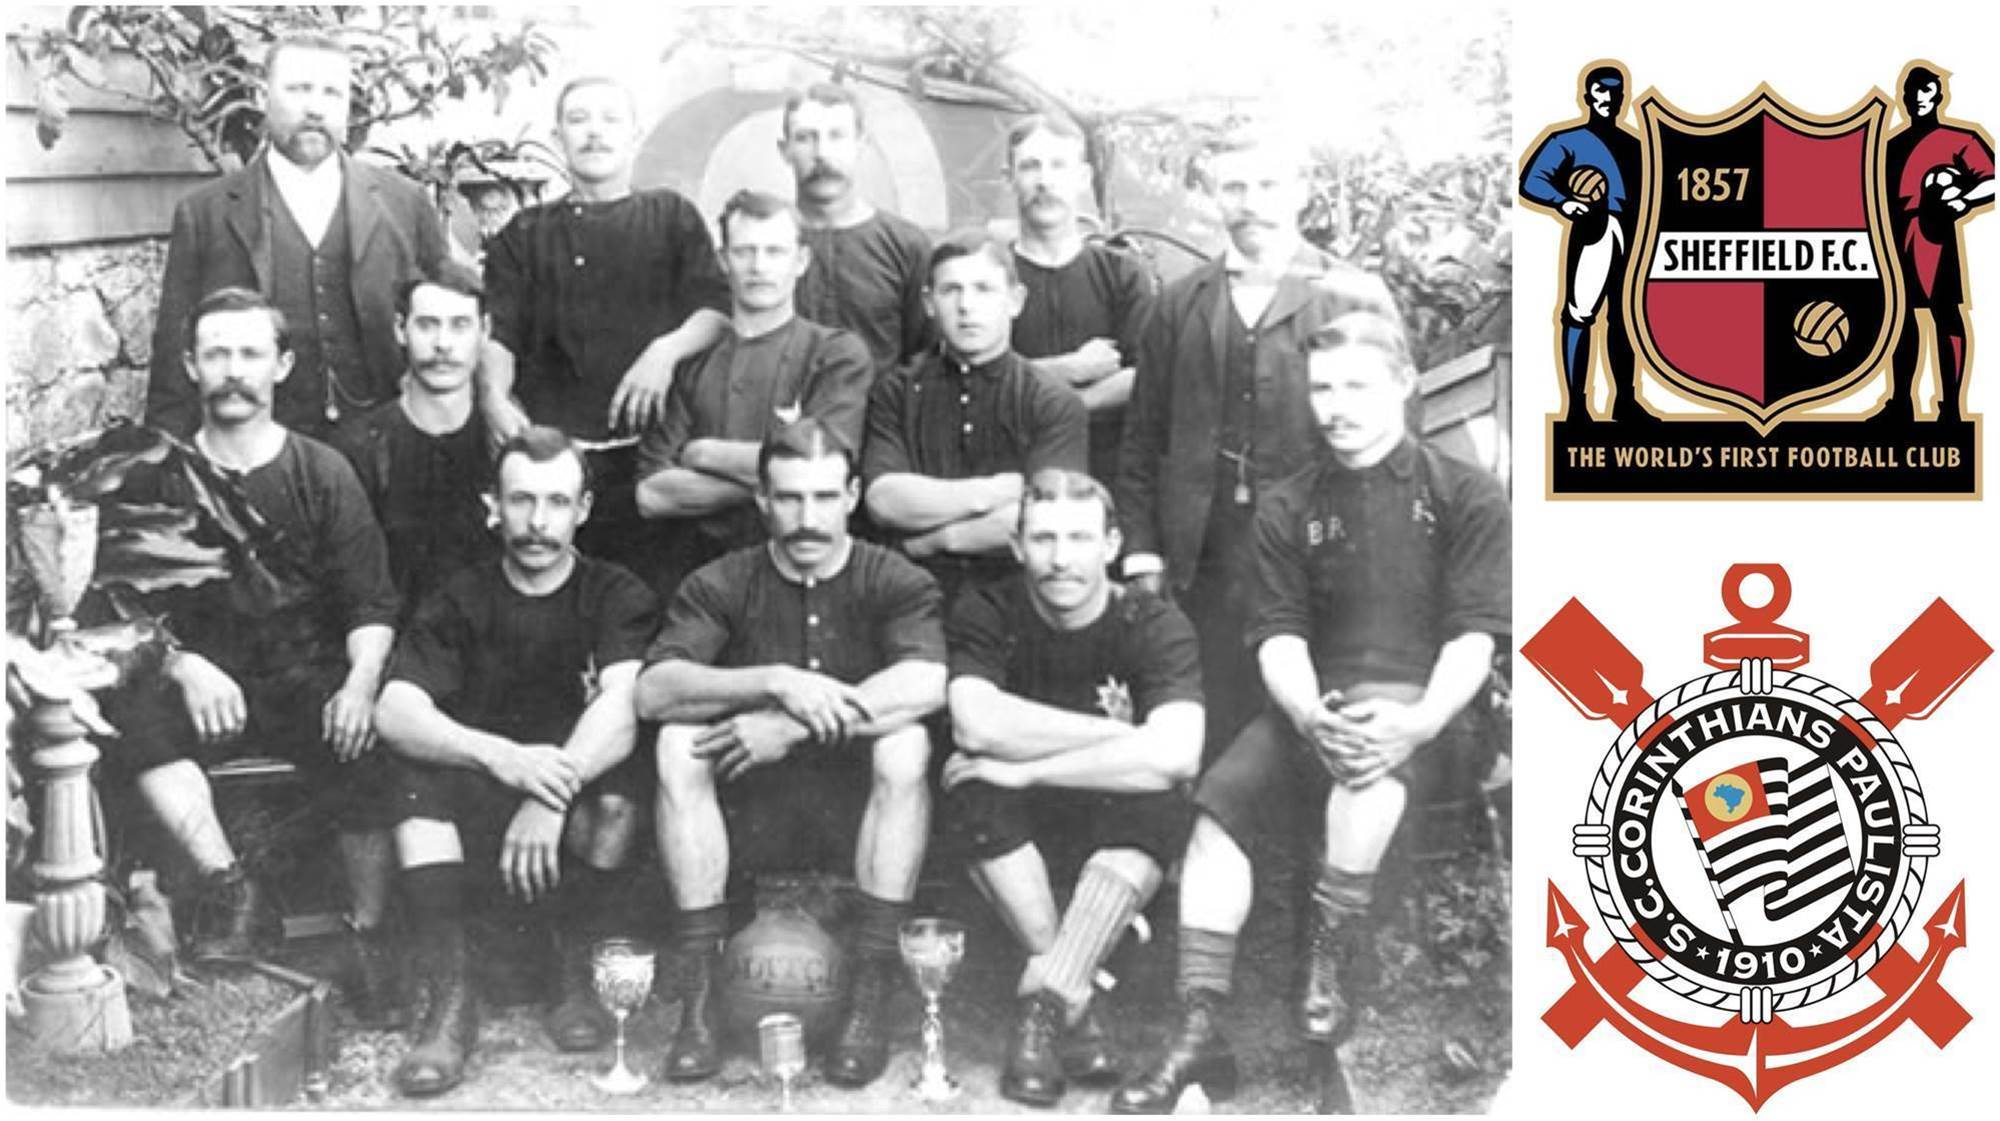 The oldest football clubs in the world